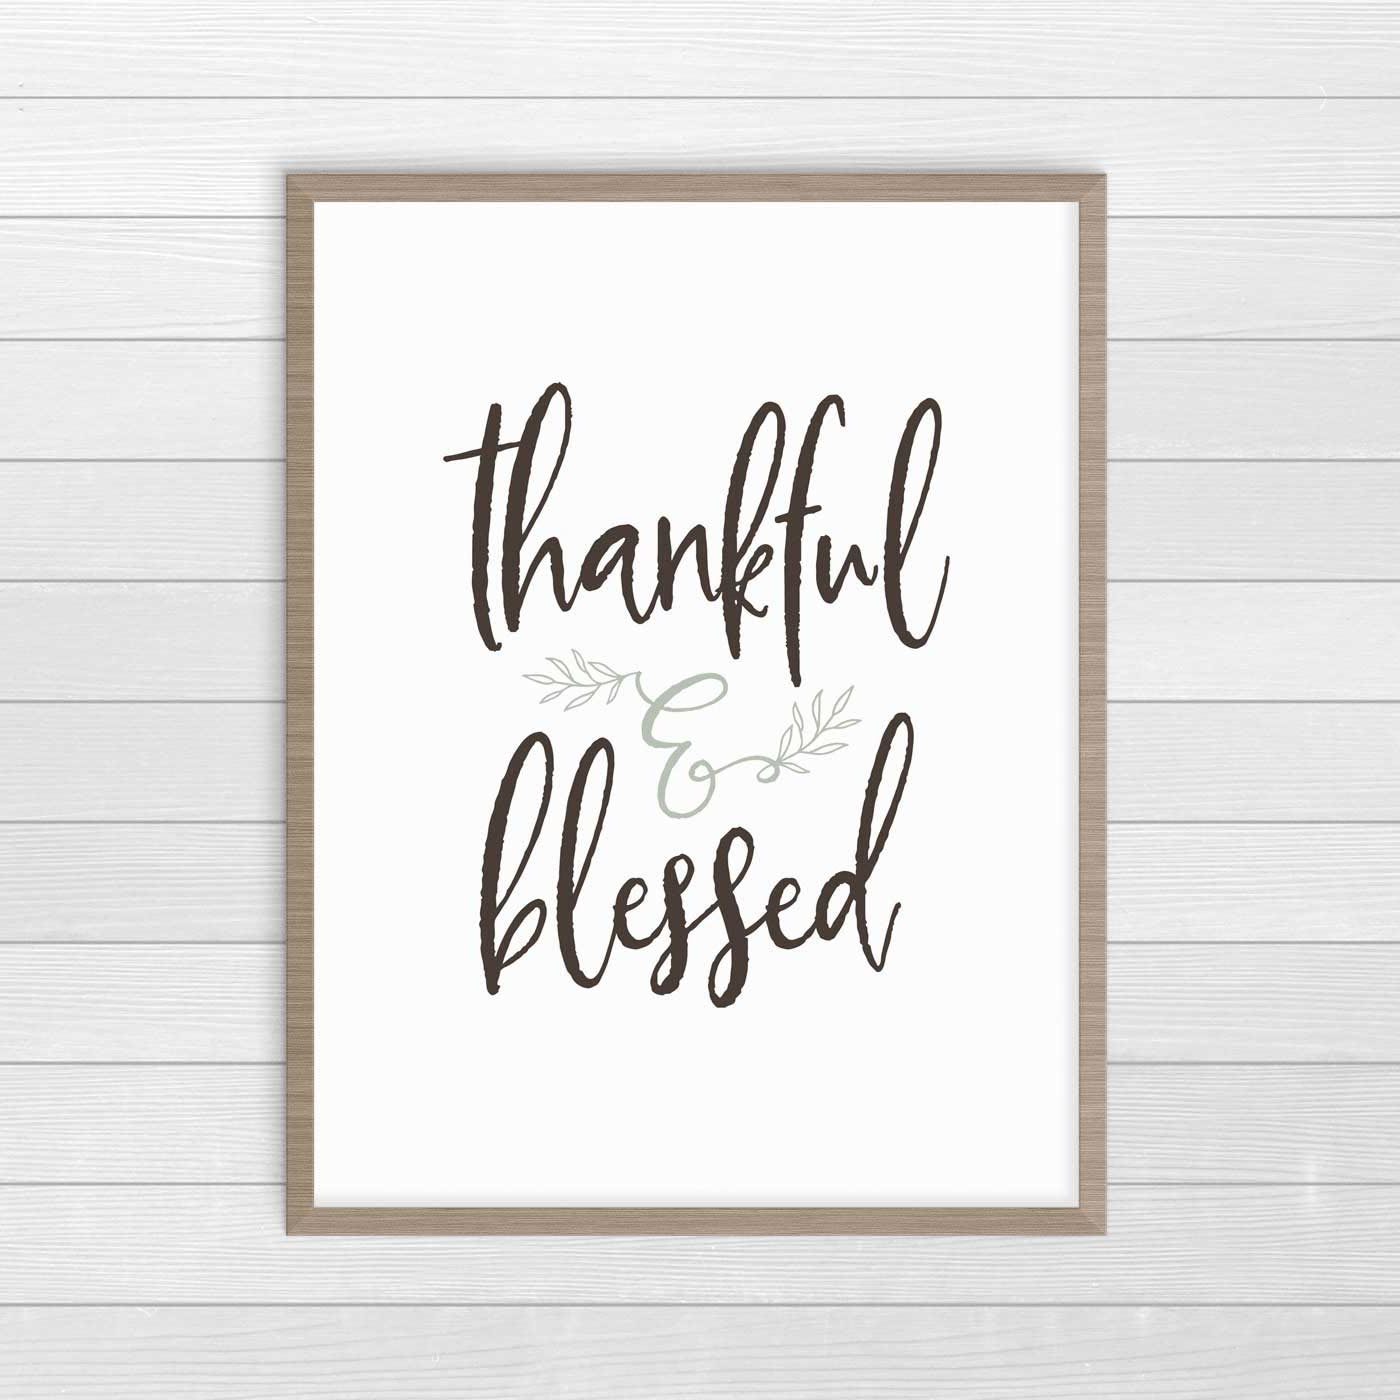 Gorgeous Thankful and Blessed farmhouse Thanksgiving print. Free printable decor. #FarmhouseDecor #ThanksgivingDecor #FreePrintables